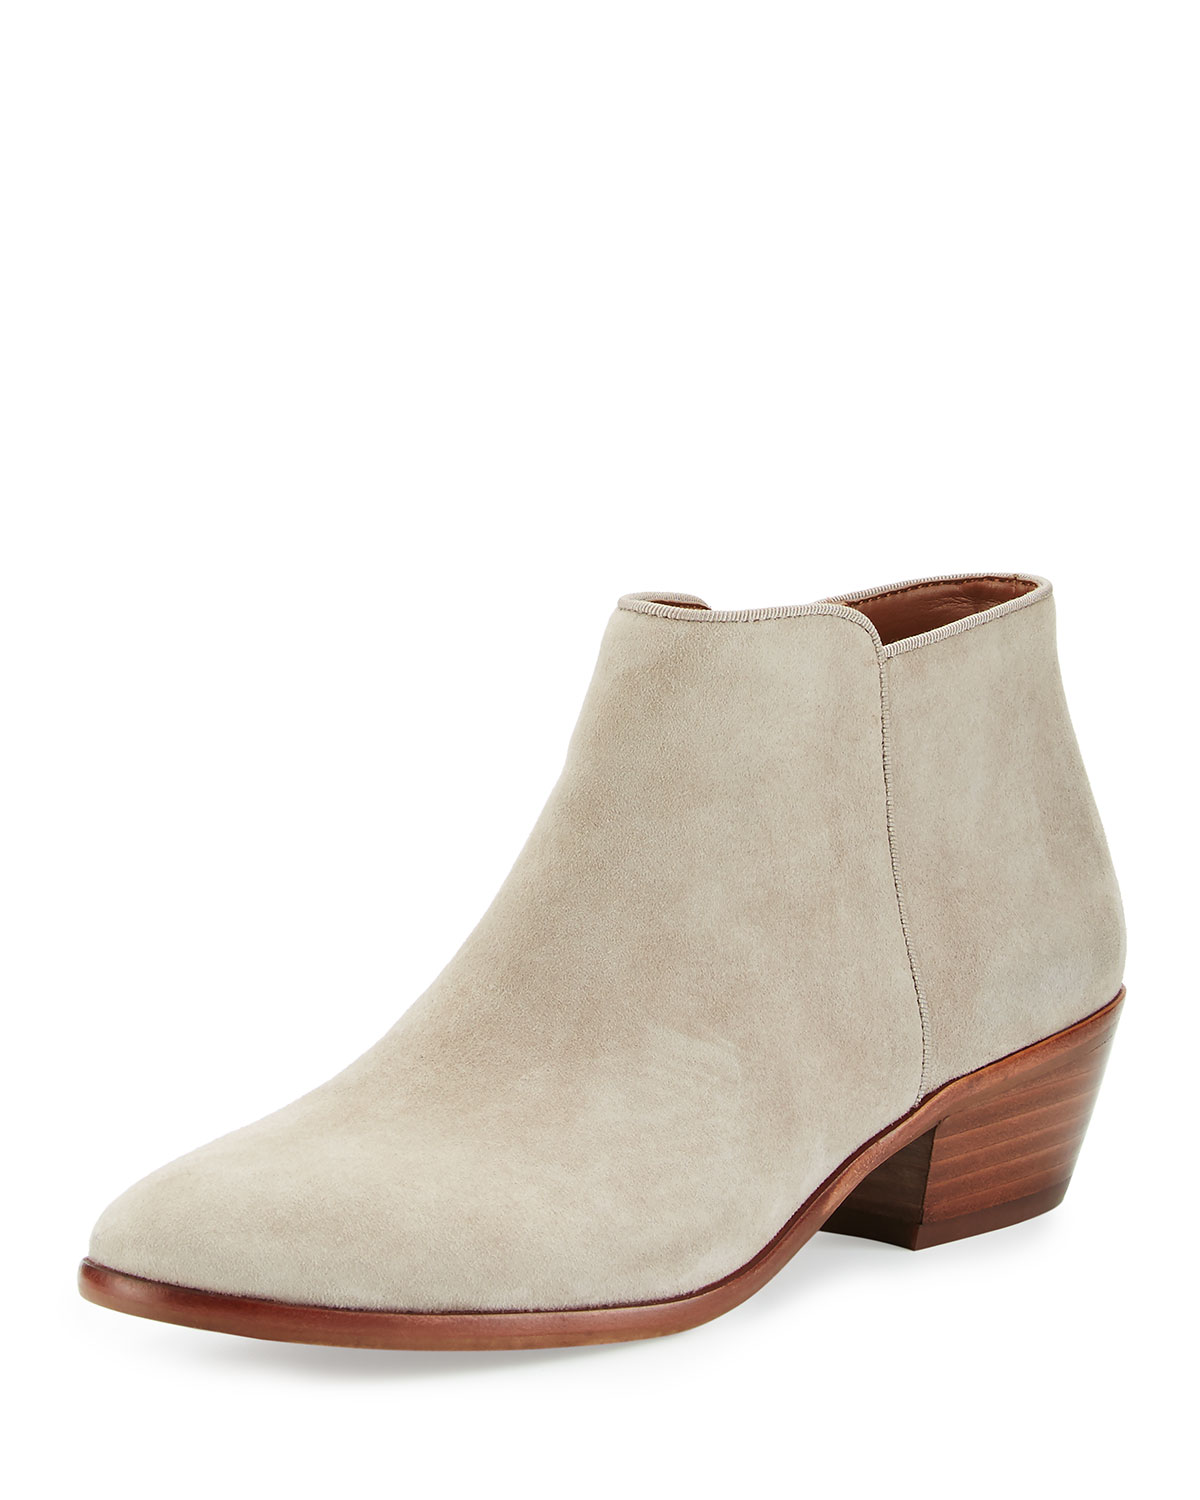 a7f042aacf18 Sam Edelman Petty Suede Ankle Boot